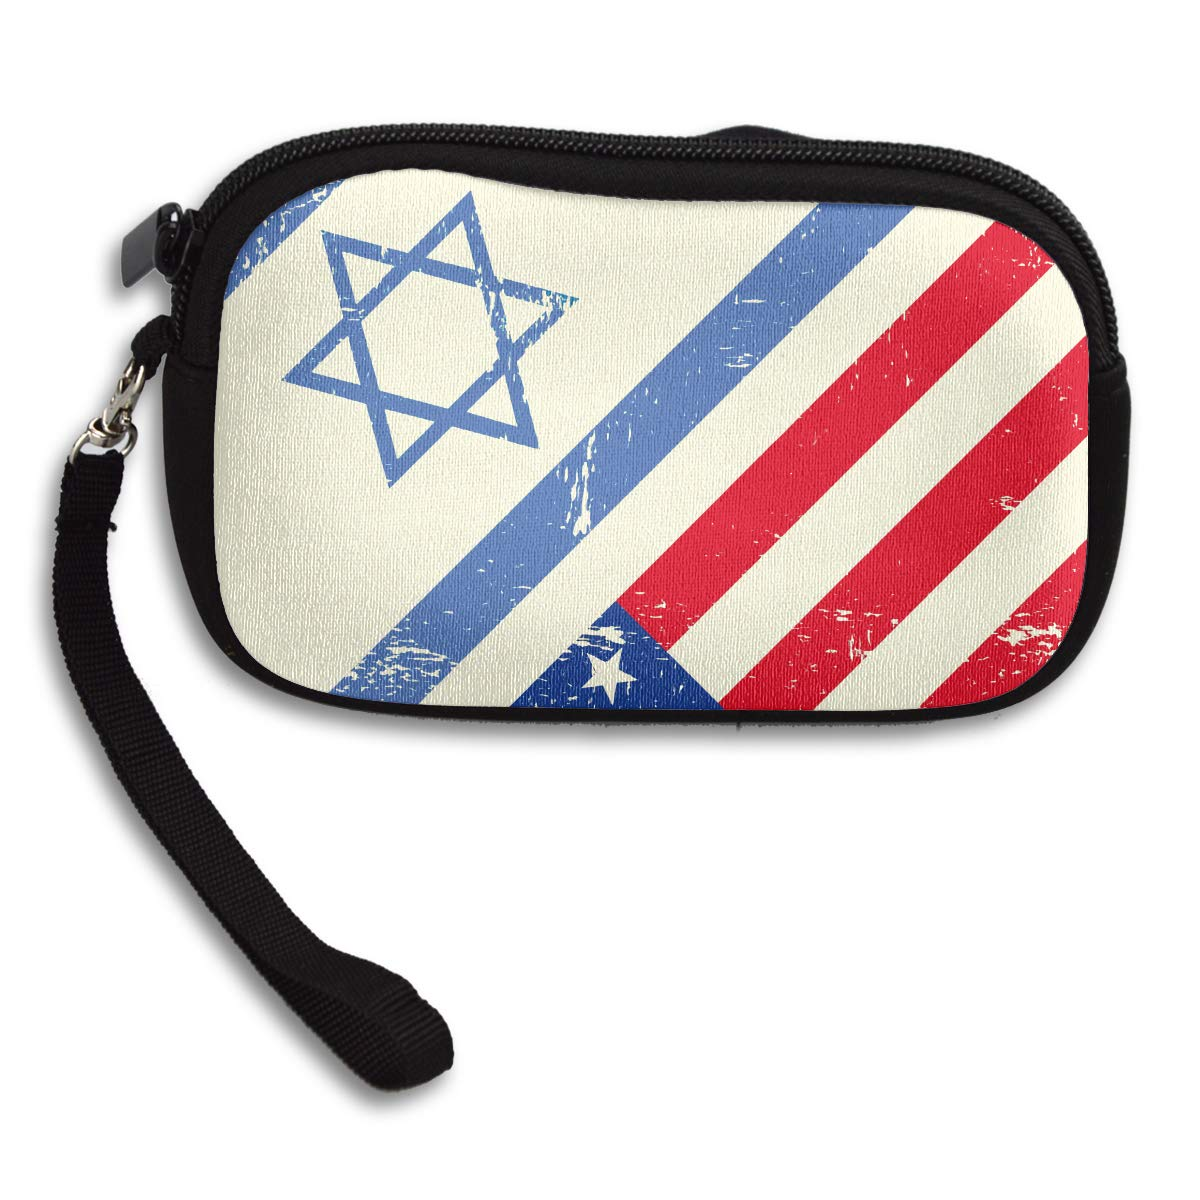 Israel And The American Flag Coin Purse Cute Change Purse,Make Up Bag,Cellphone Bag With Handle Purses For Women